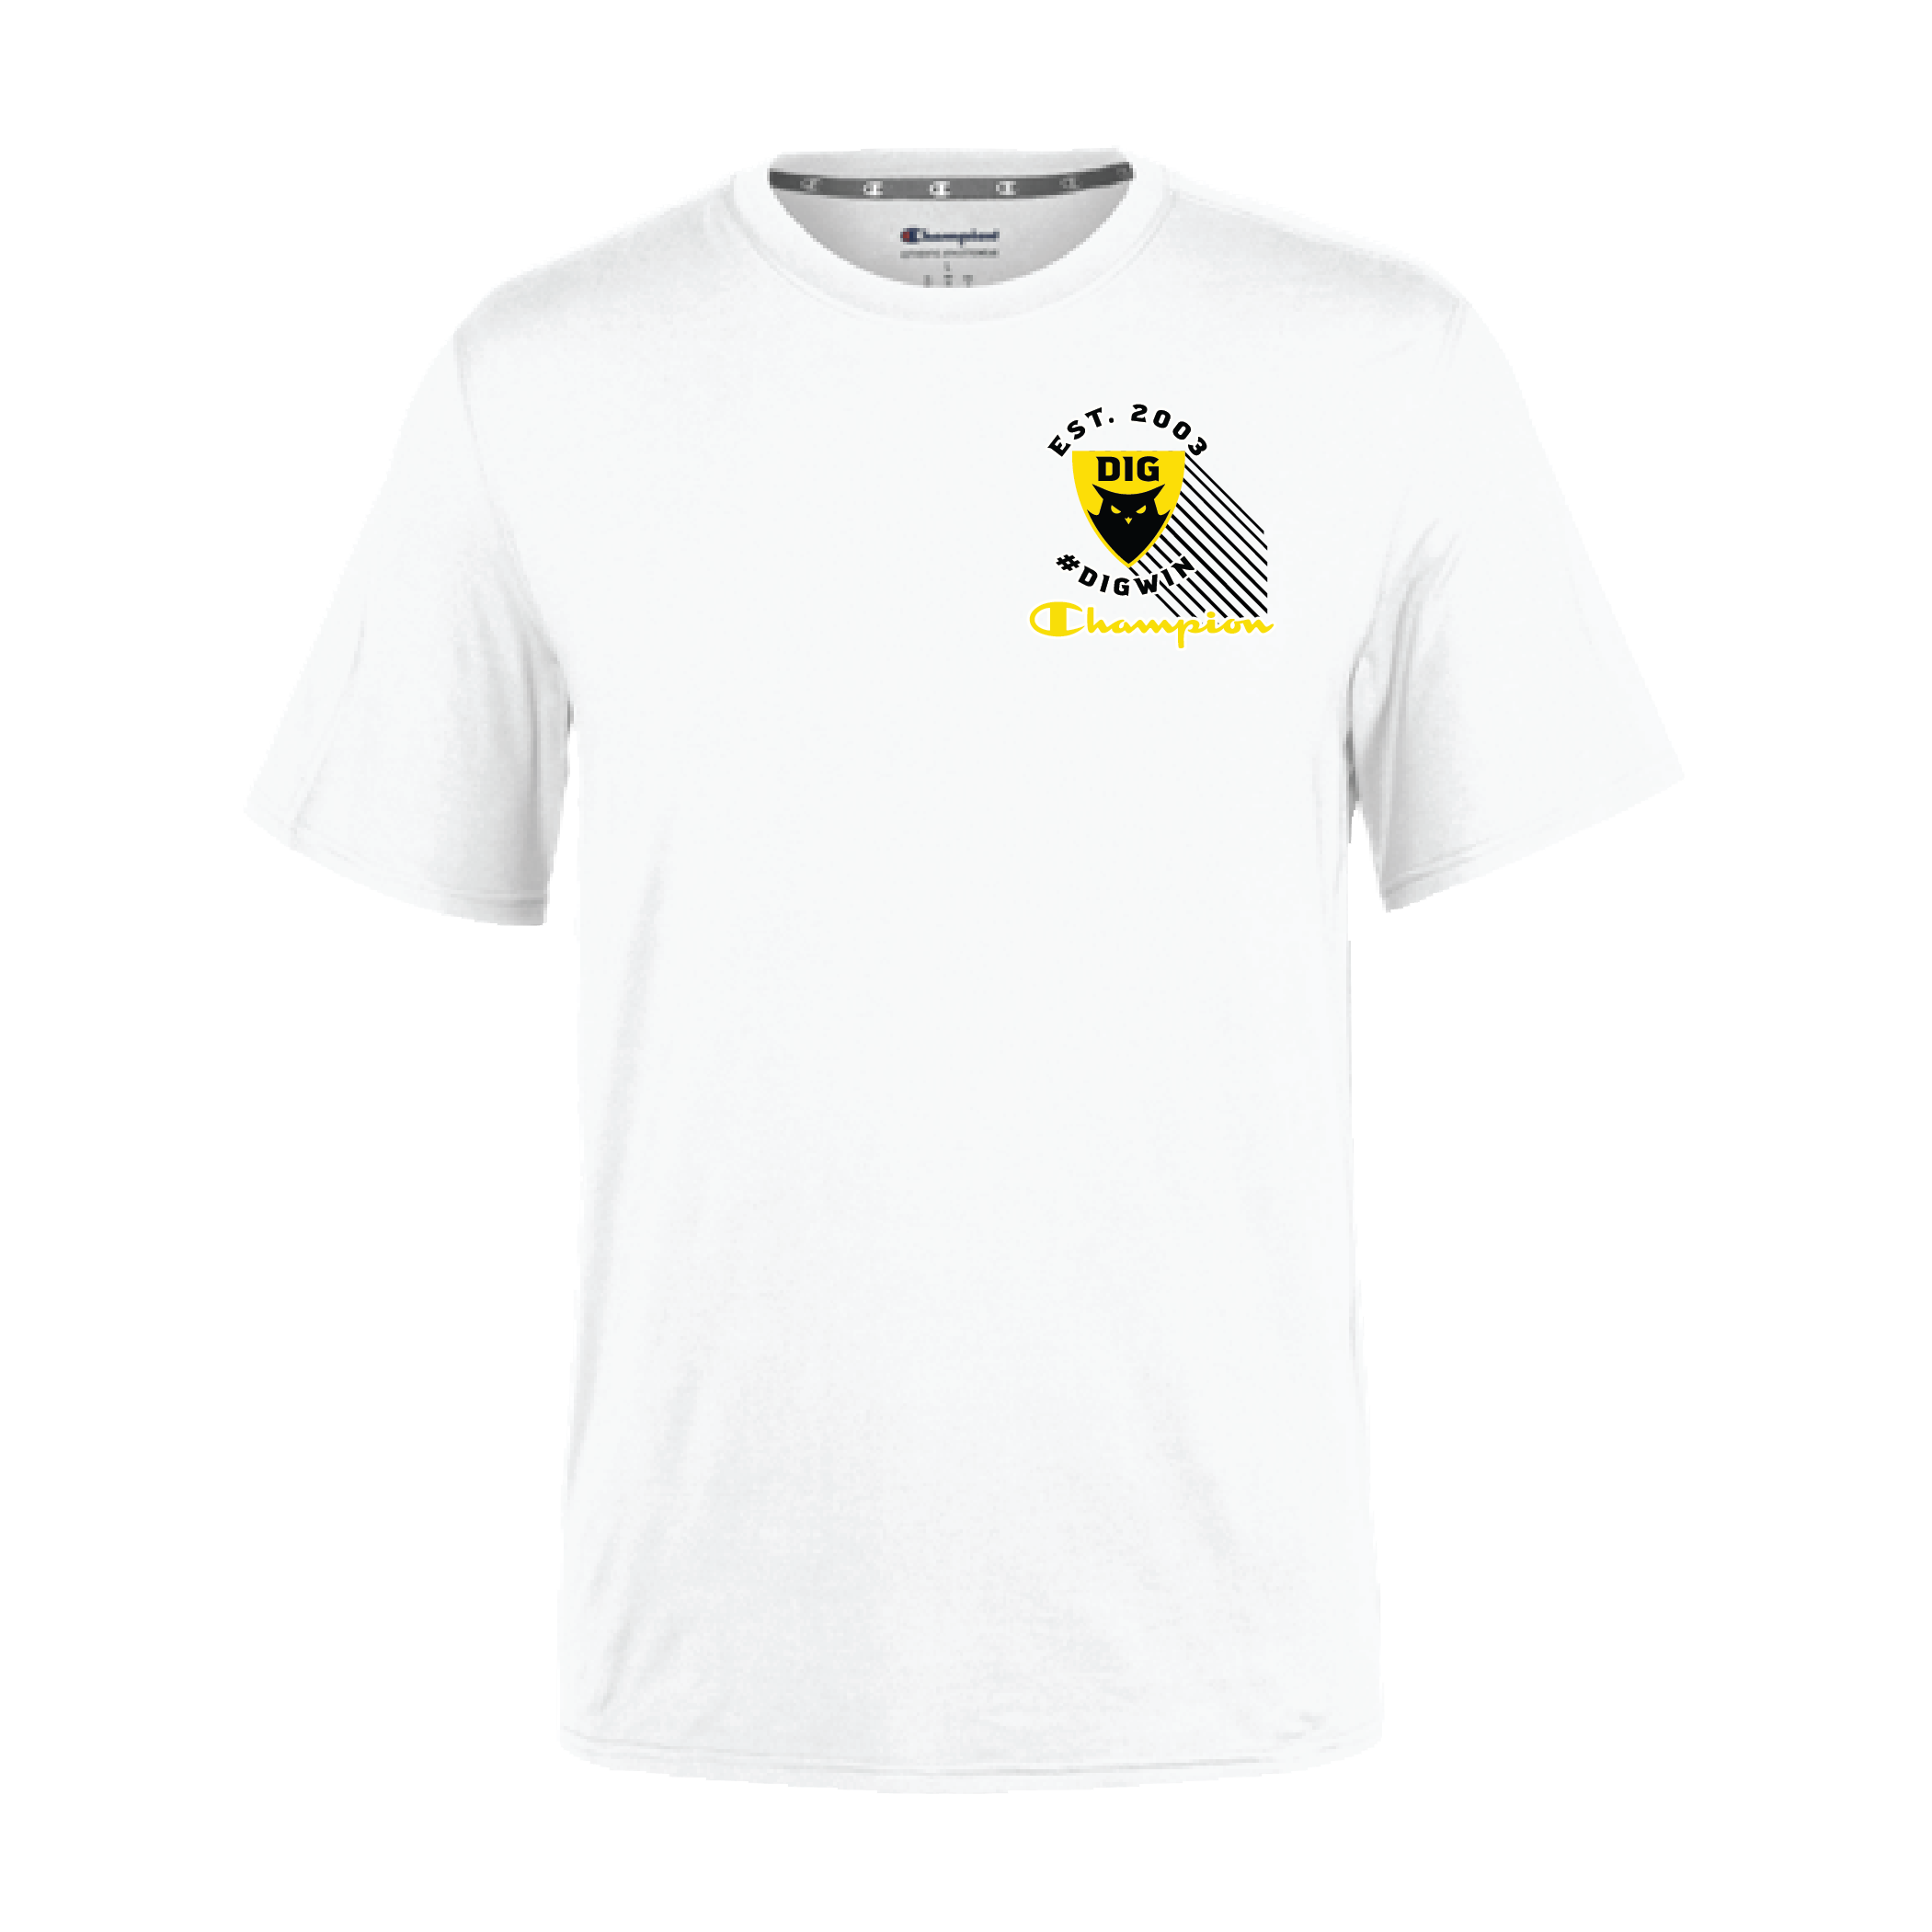 Dignitas Stylistic Tee